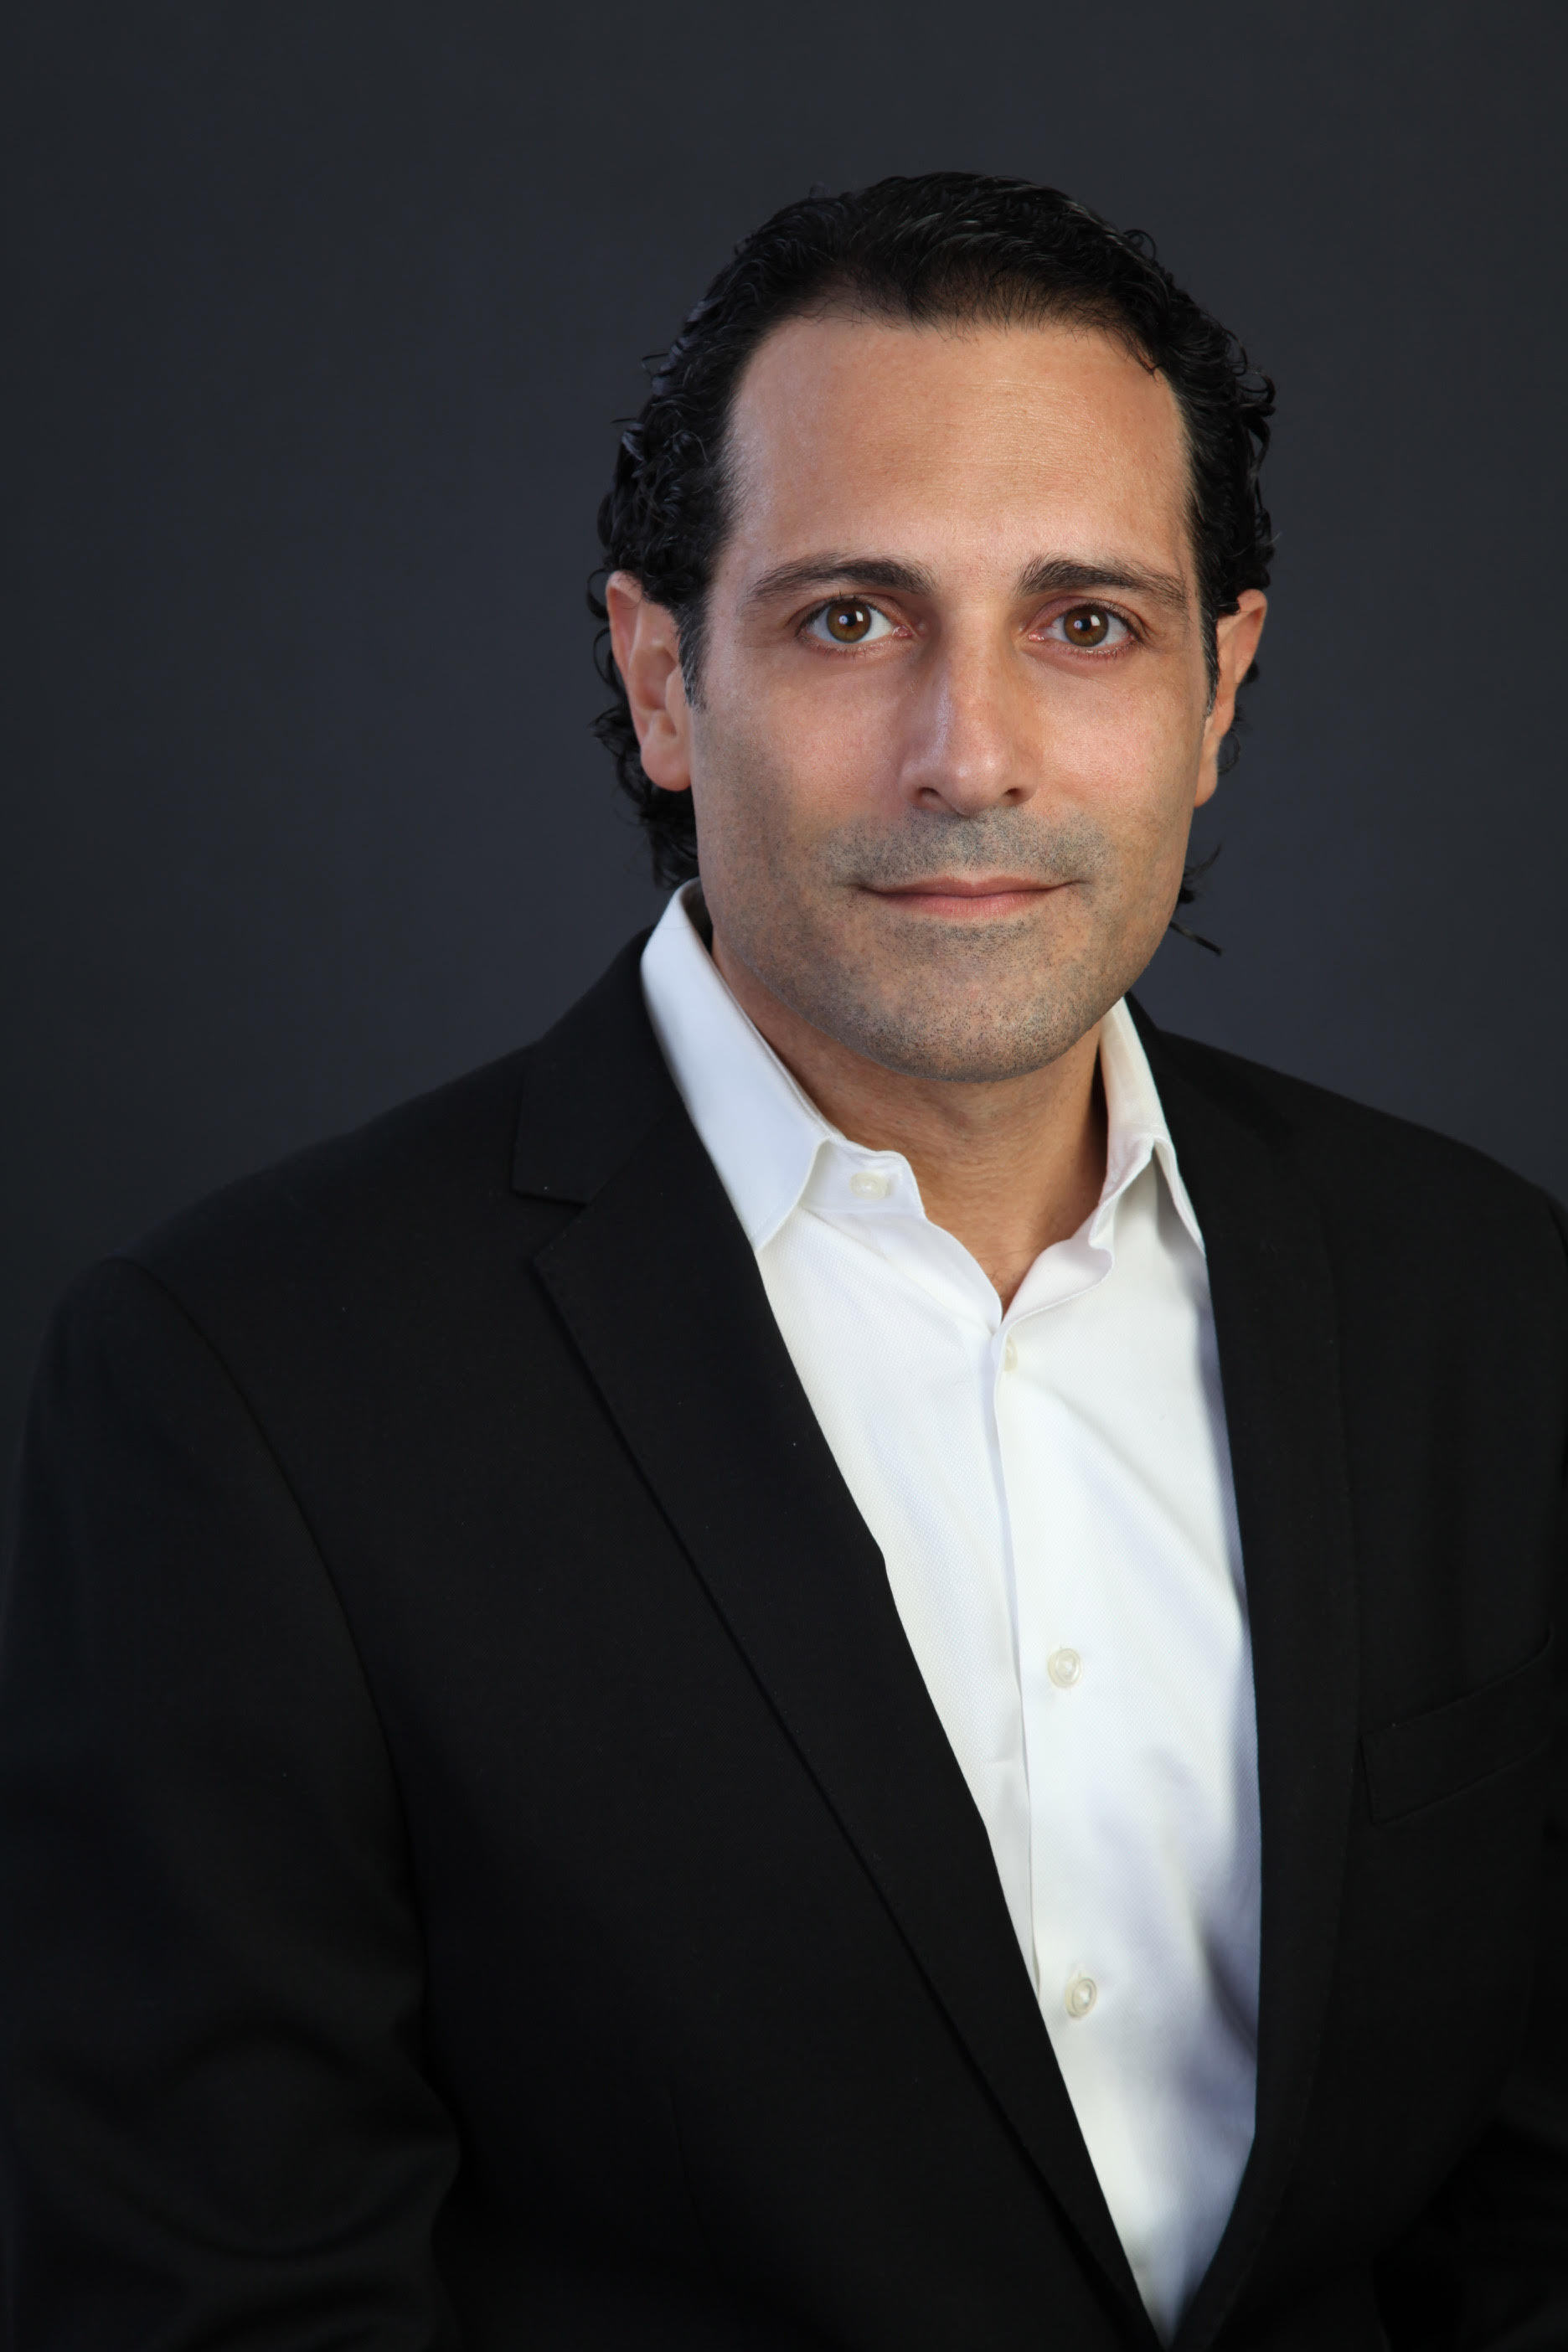 nader professional photo .jpg